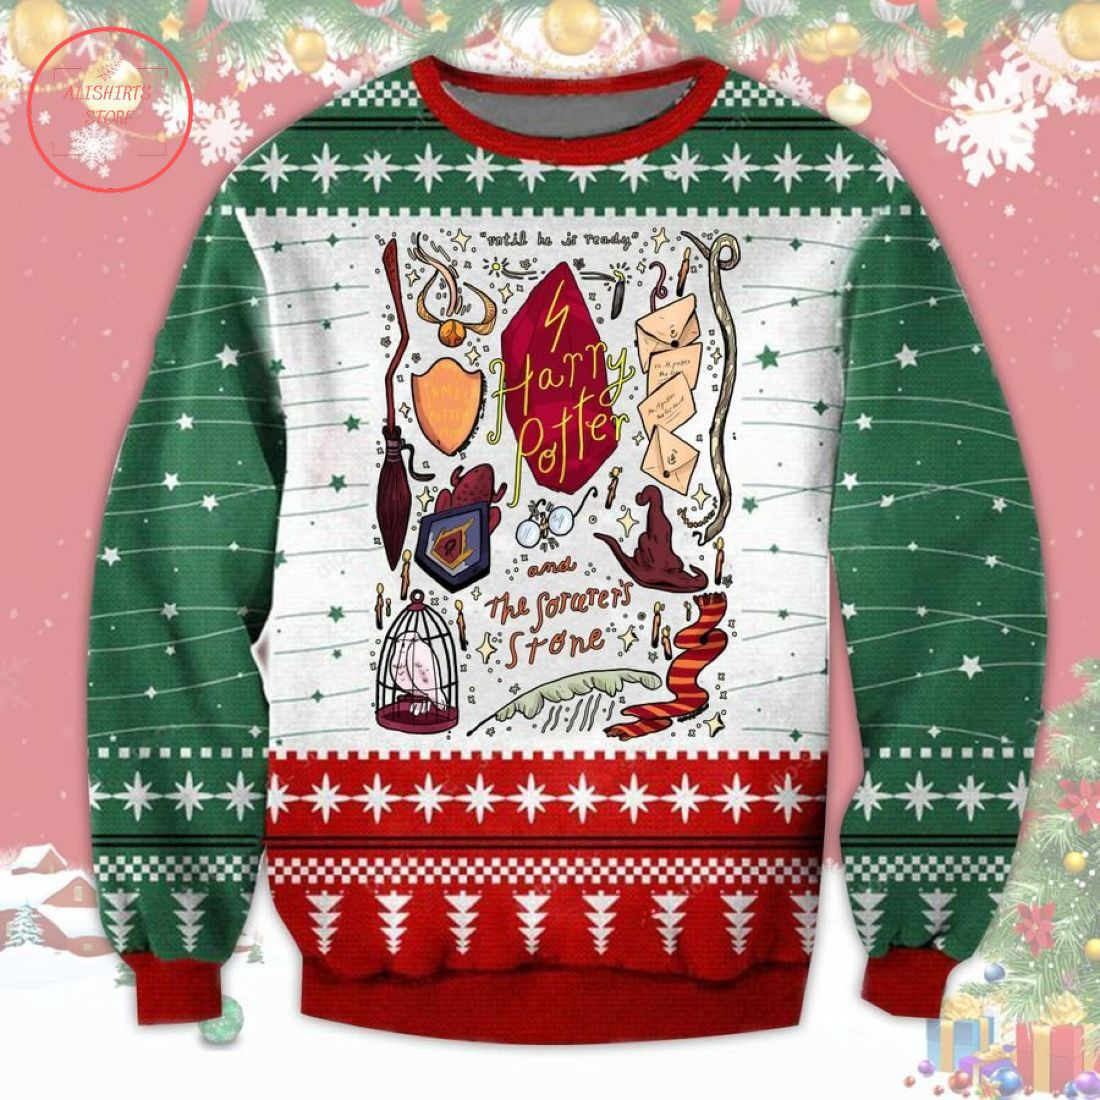 Harry Potter and the sorcerer's stone ugly Christmas Sweater